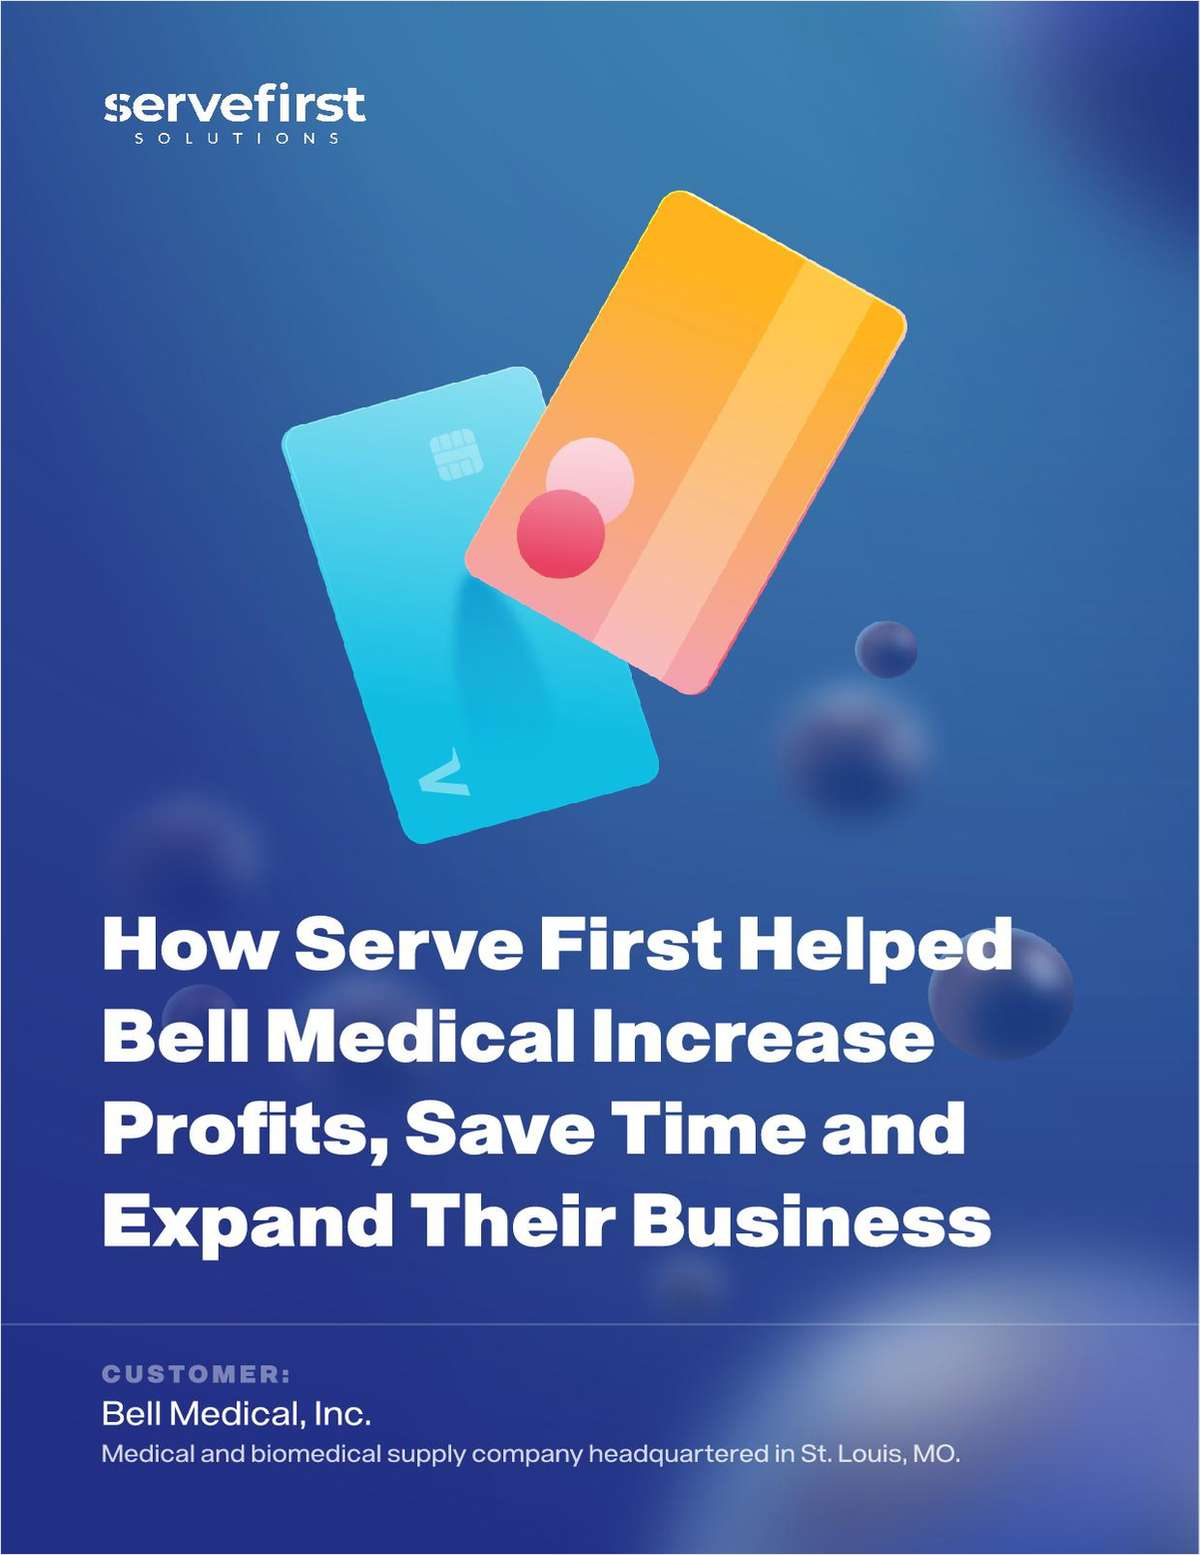 Case study: Increase Profits and Save Time With Better Payment Processing